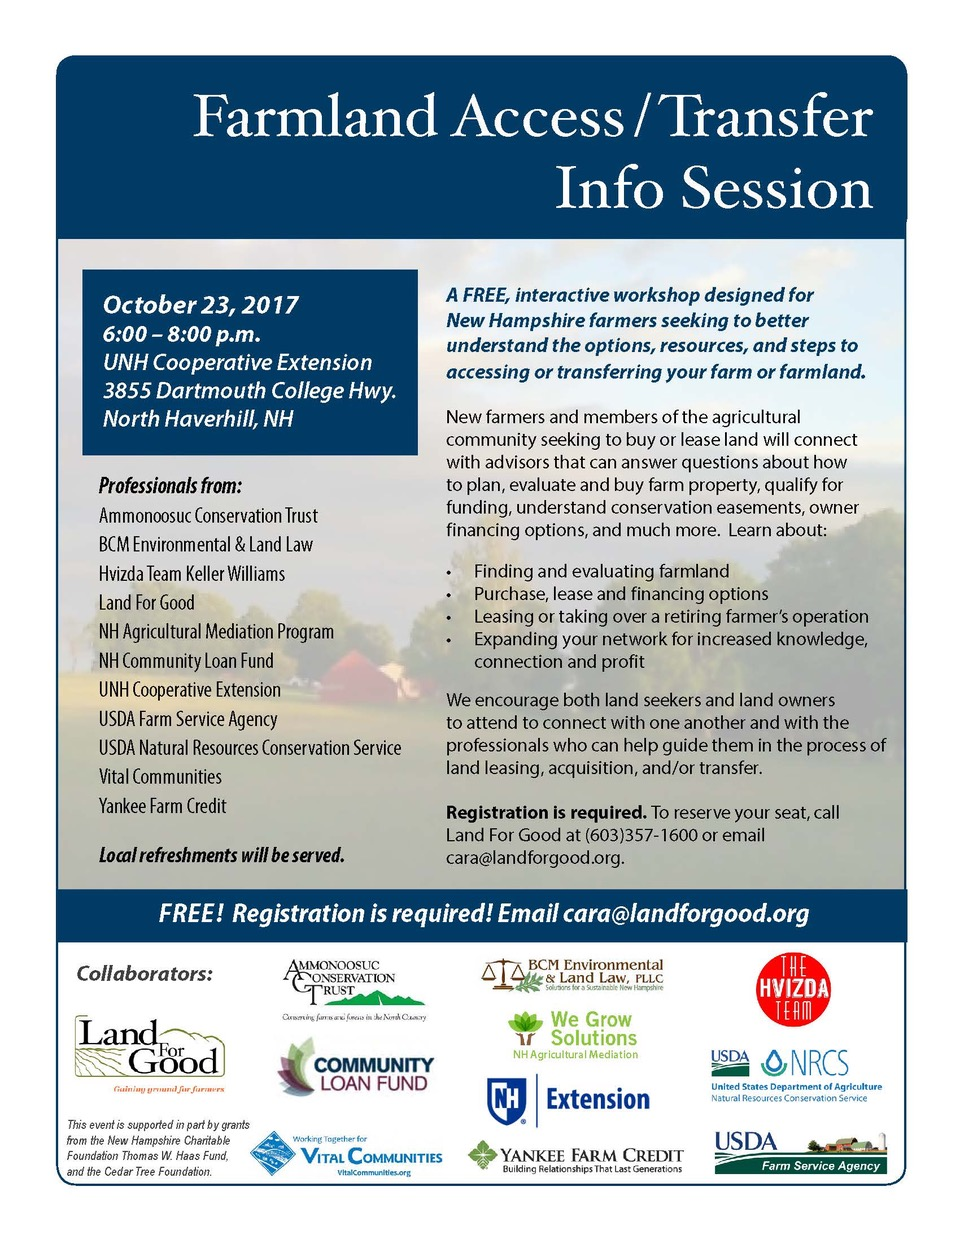 20171023_Farmland Access Transfer Workshop.jpeg